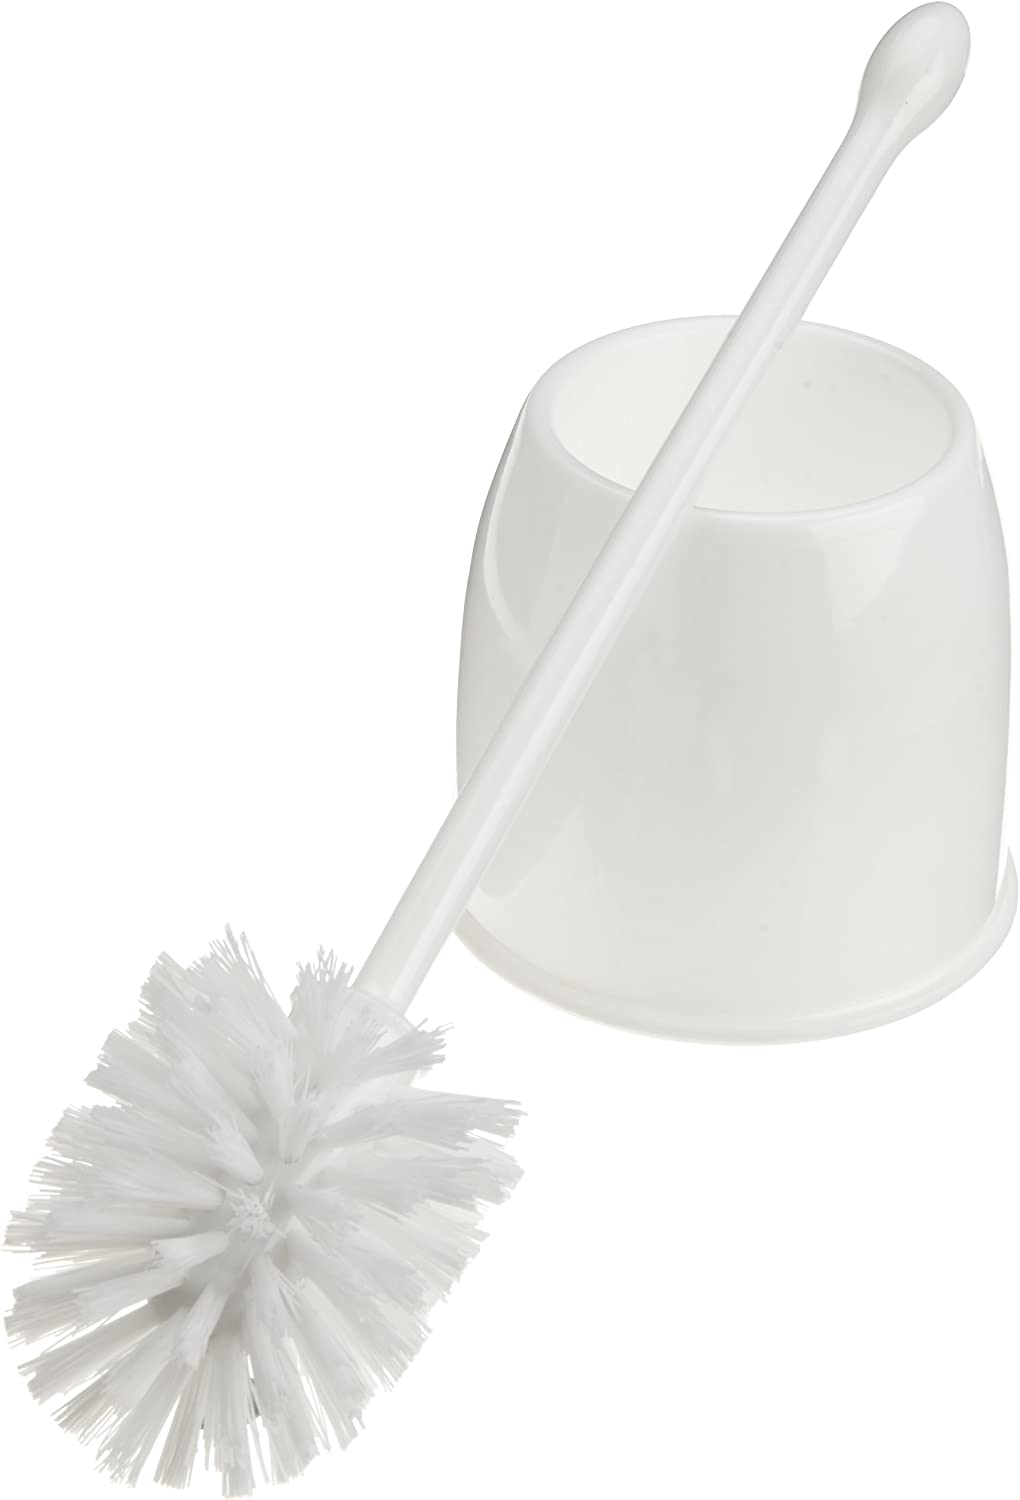 Casabella Toilet Bowl Brush with Holder Set, White: Home & Kitchen